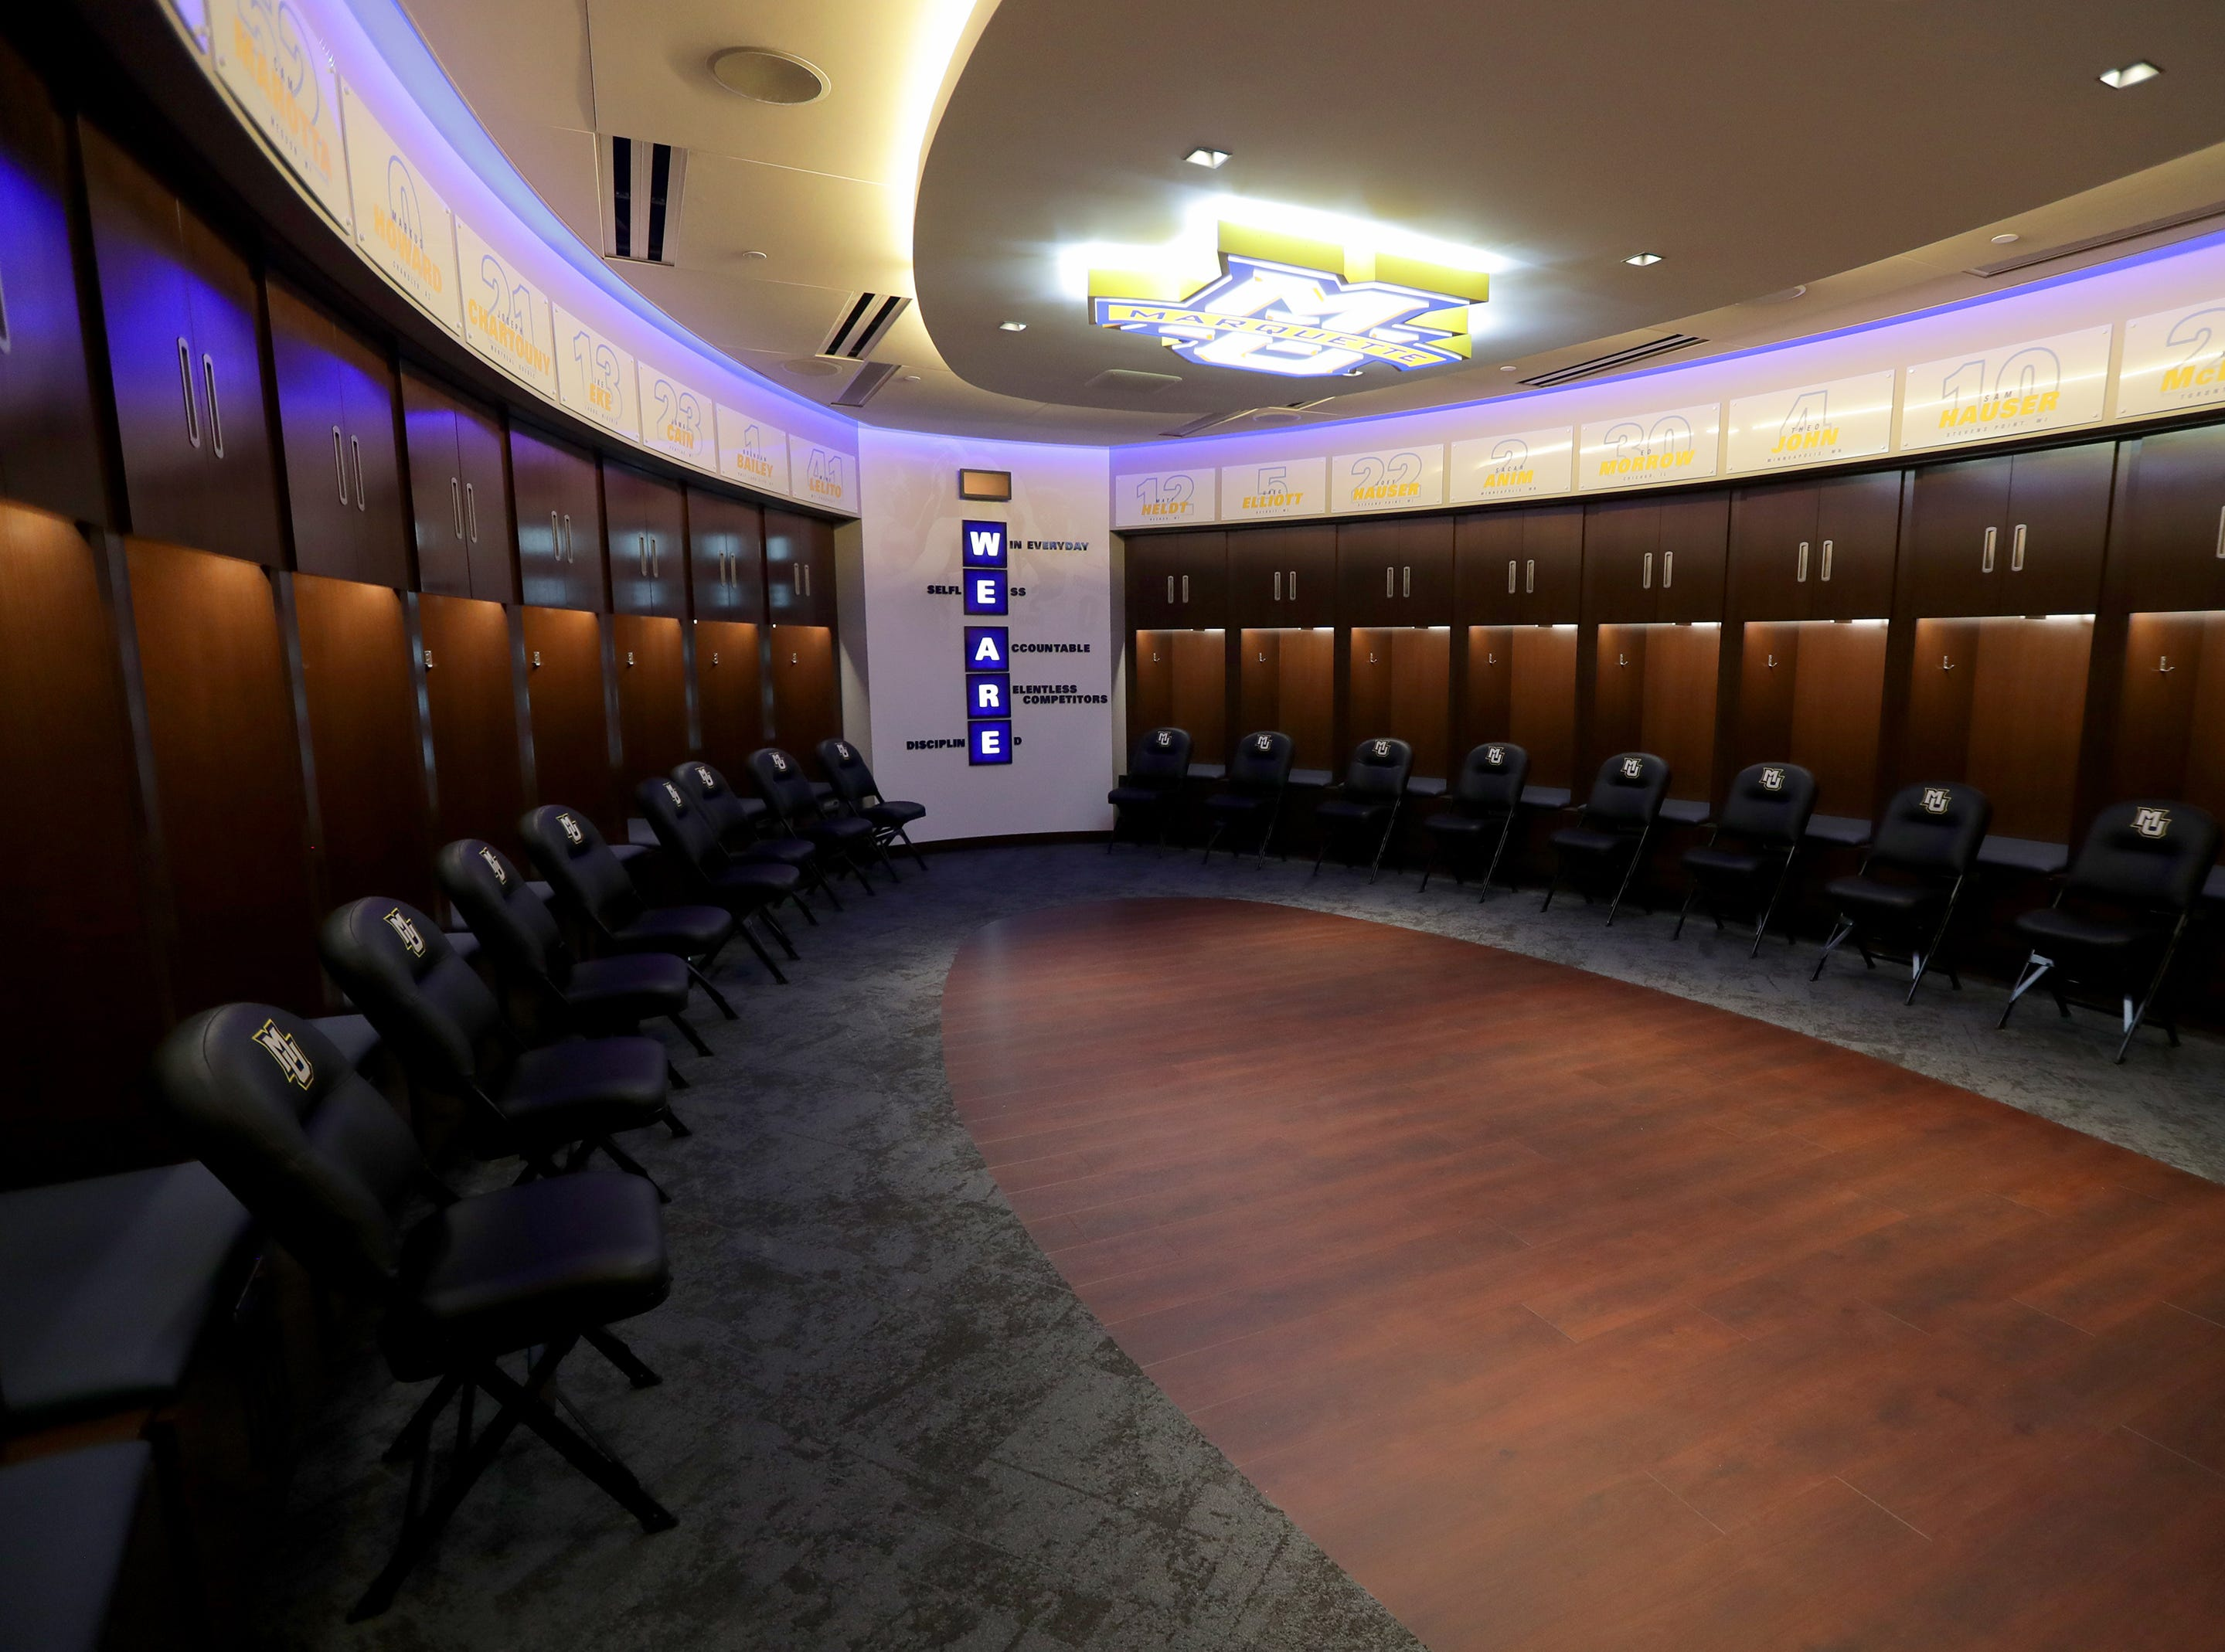 The Marquette mens' basketball team locker room is complete at the new Fiserve Forum, the home of the Milwaukee Bucks. Monday, August 27, 2018.  -  Photo by Mike De Sisti / Milwaukee Journal Sentinel